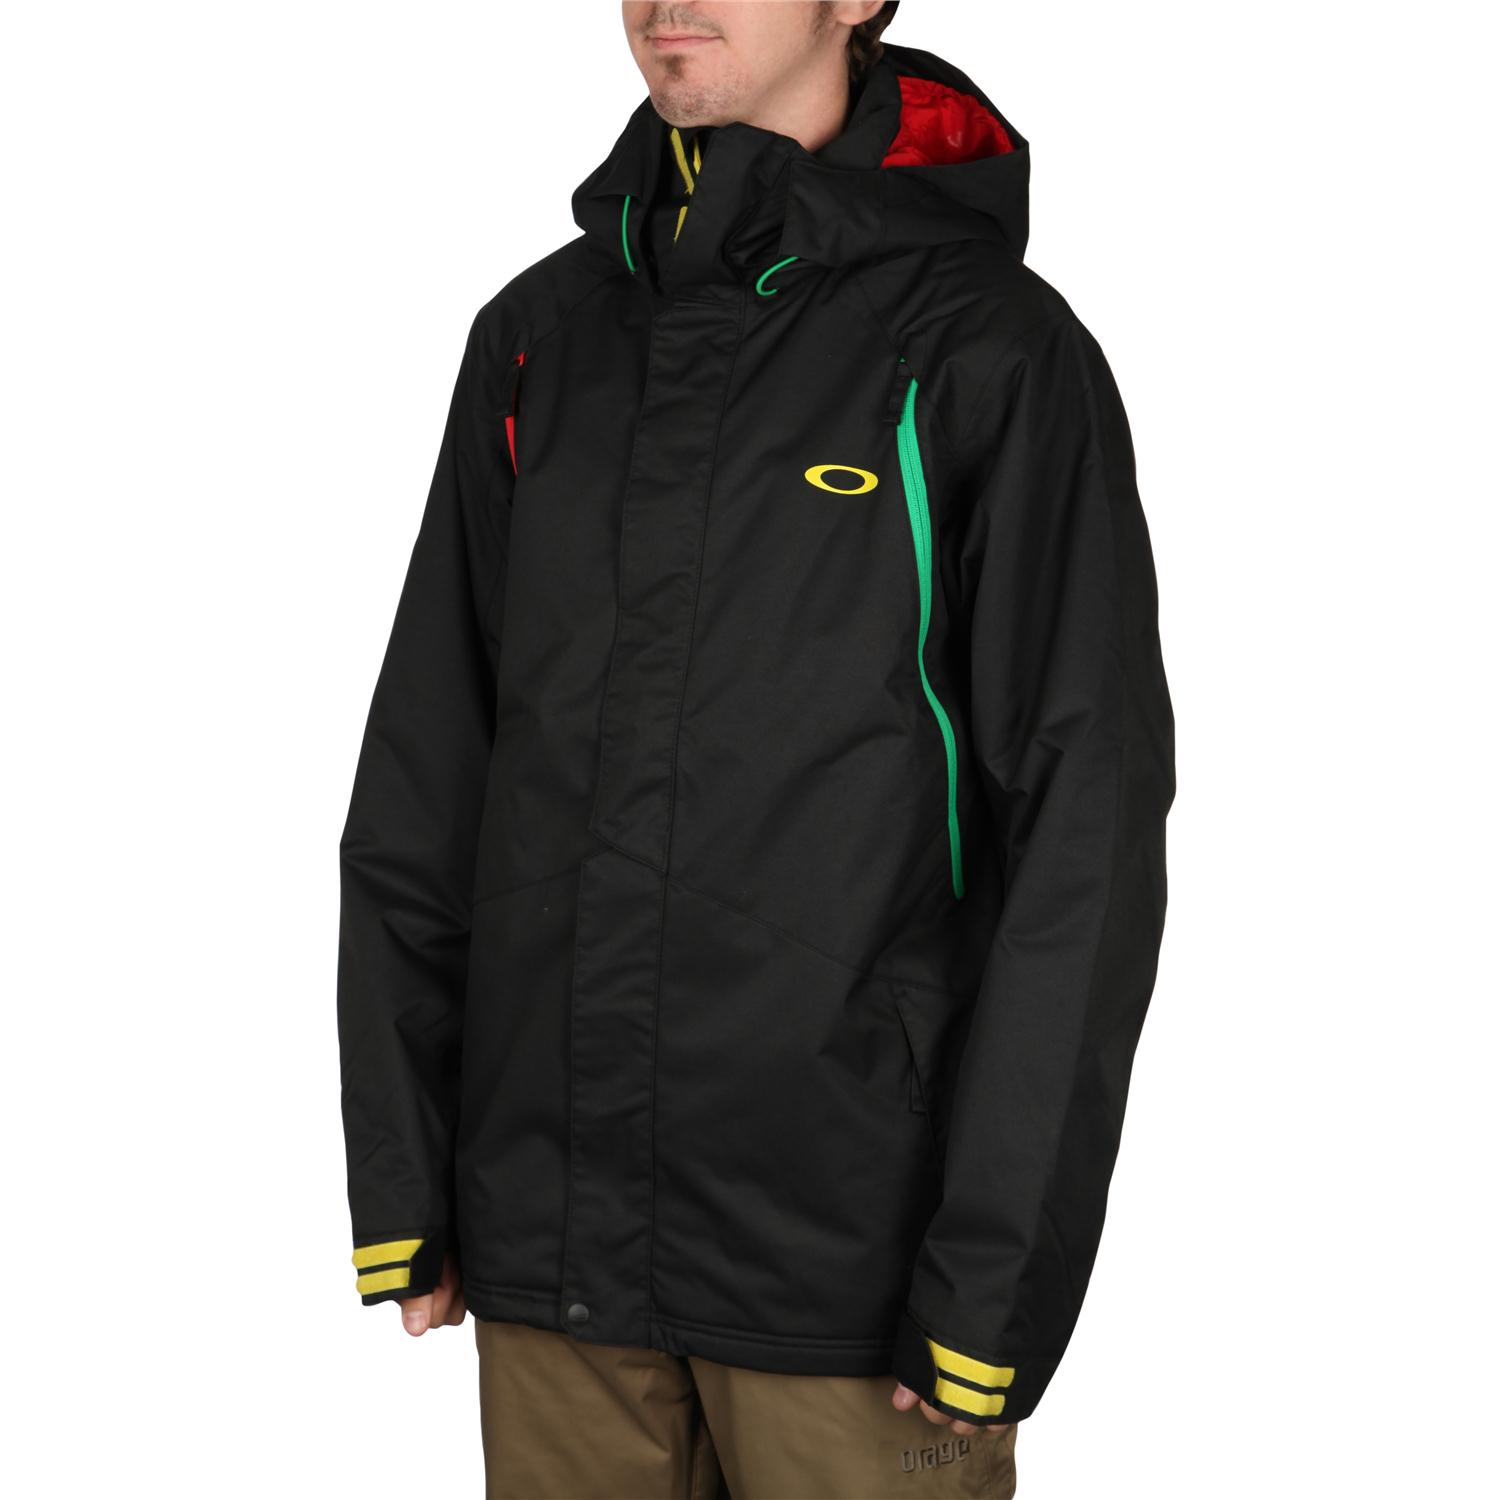 Oakley deals jacket